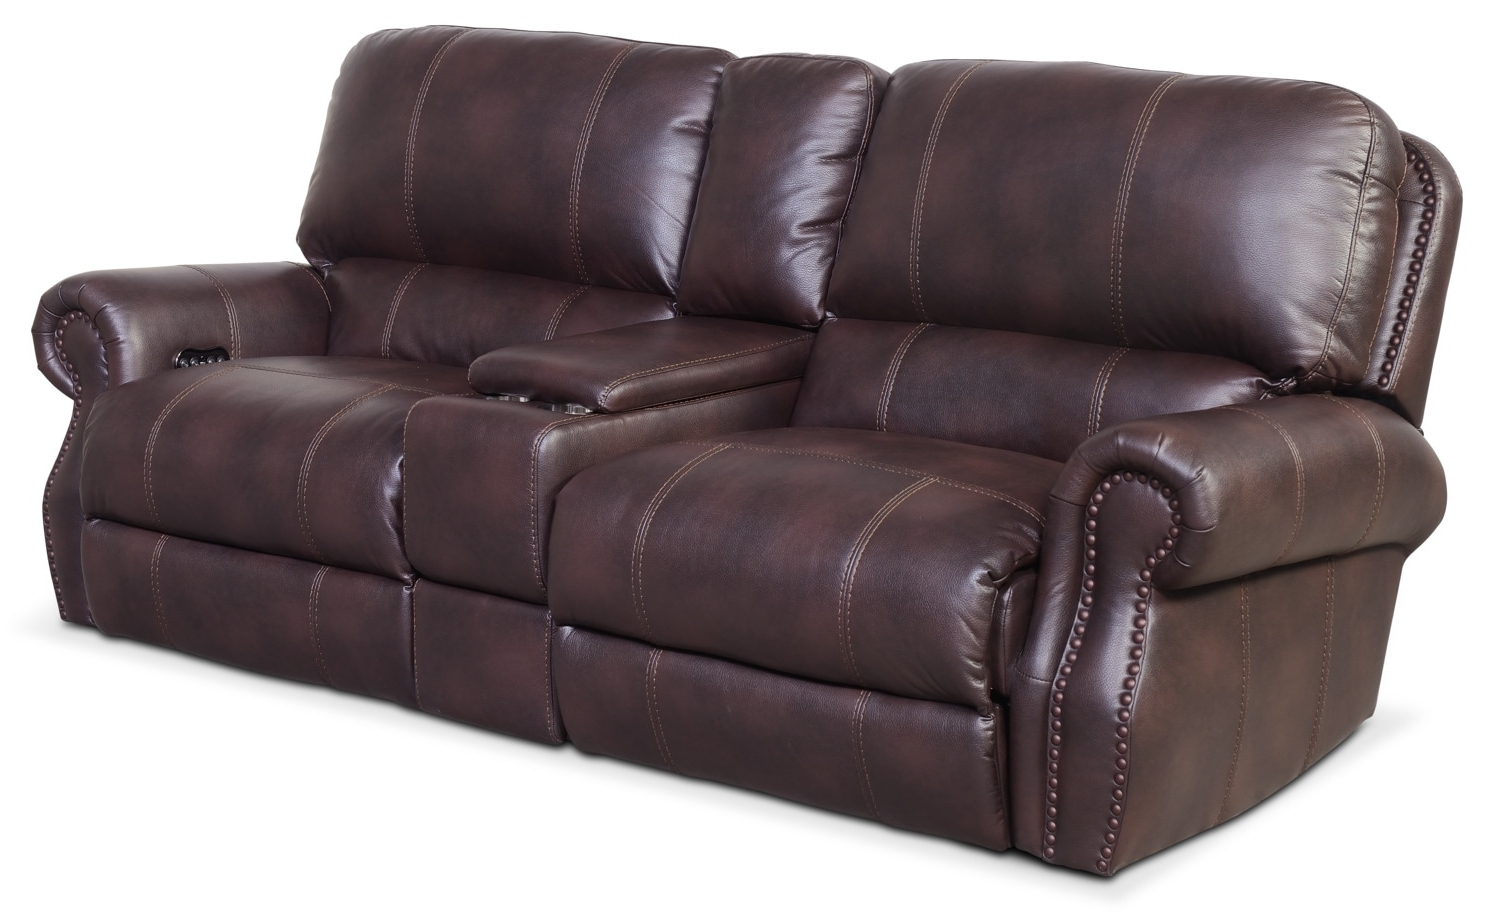 Sofas With Consoles With Regard To 2019 Dartmouth 3 Piece Power Reclining Sofa With Console – Burgundy (View 16 of 20)